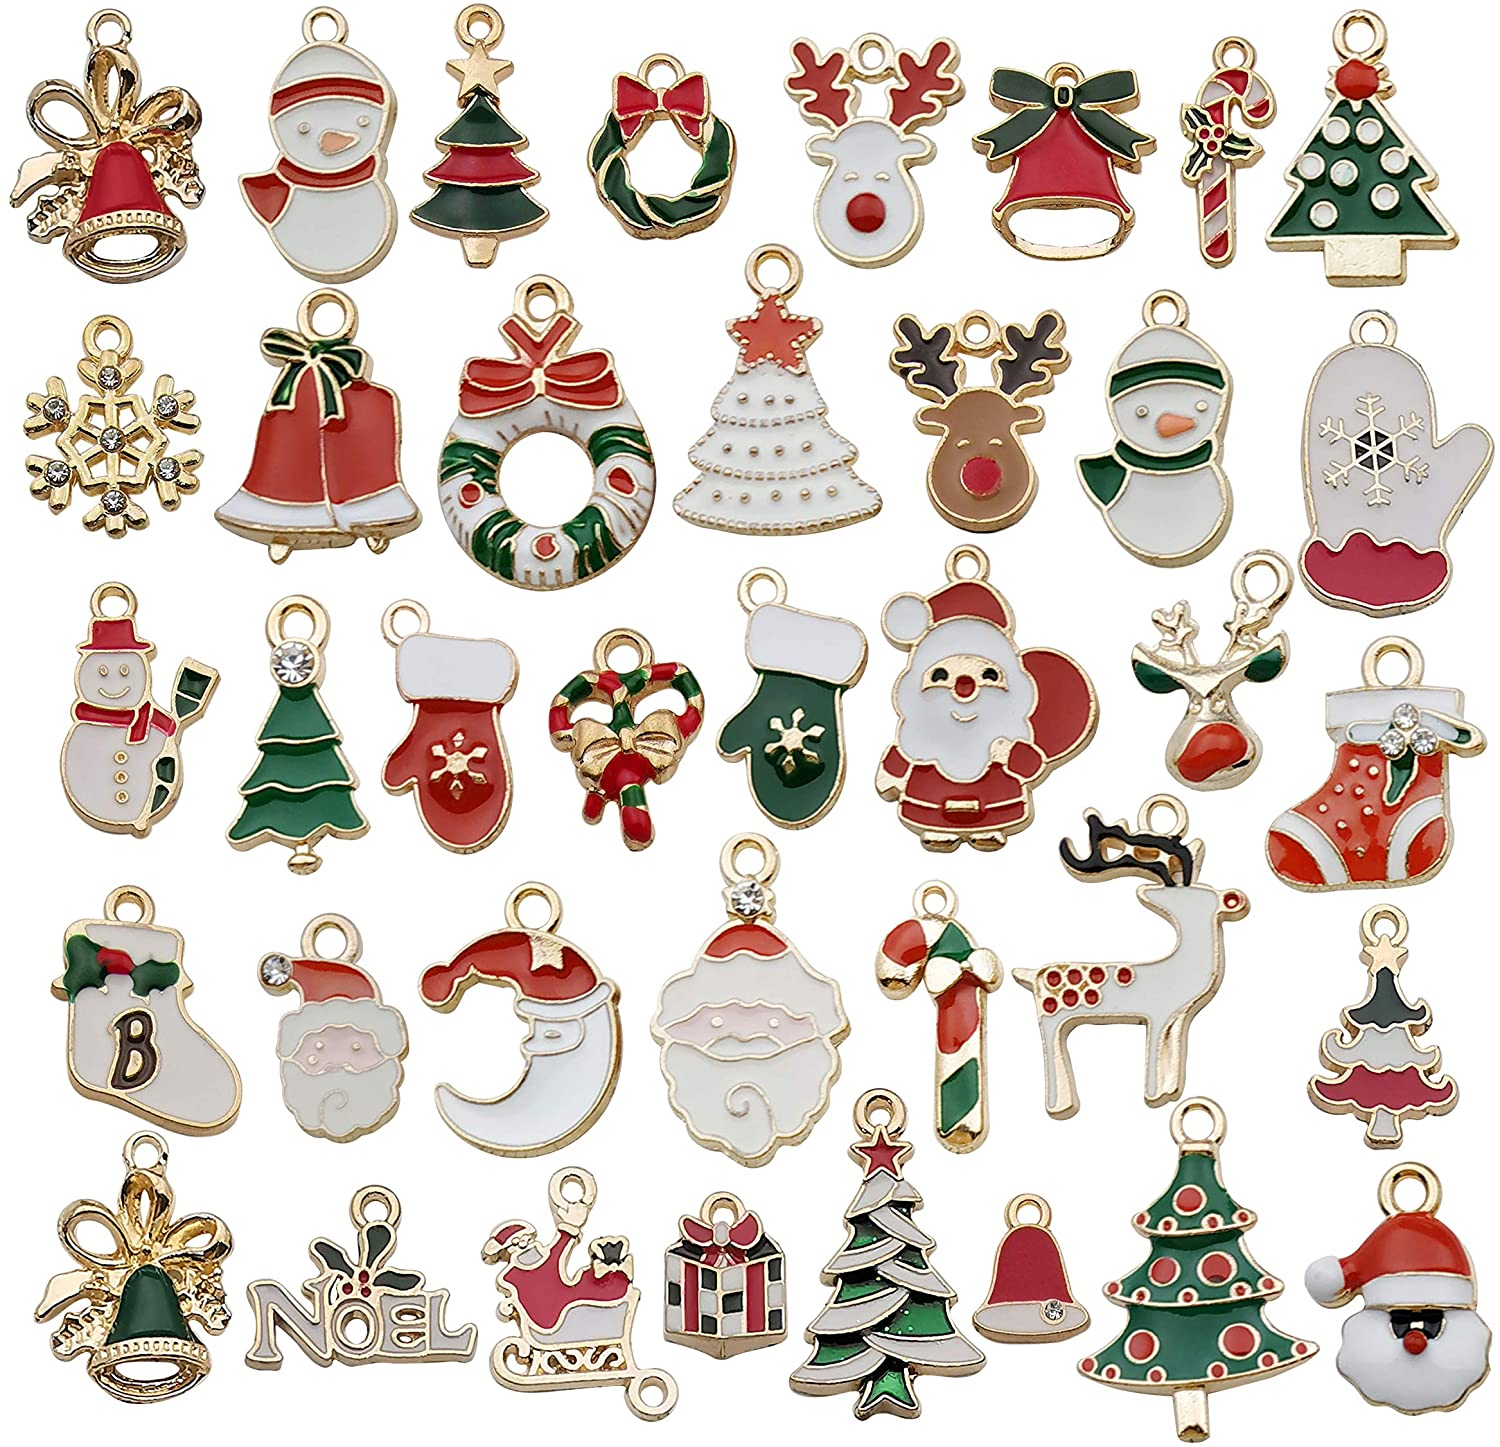 38 Pcs Gold Enamel Christmas Charms for DIY Jewelry Making Necklace Bracelet Earring DIY Christmas Clothes Sewing Bags Decoration Charms (M457)